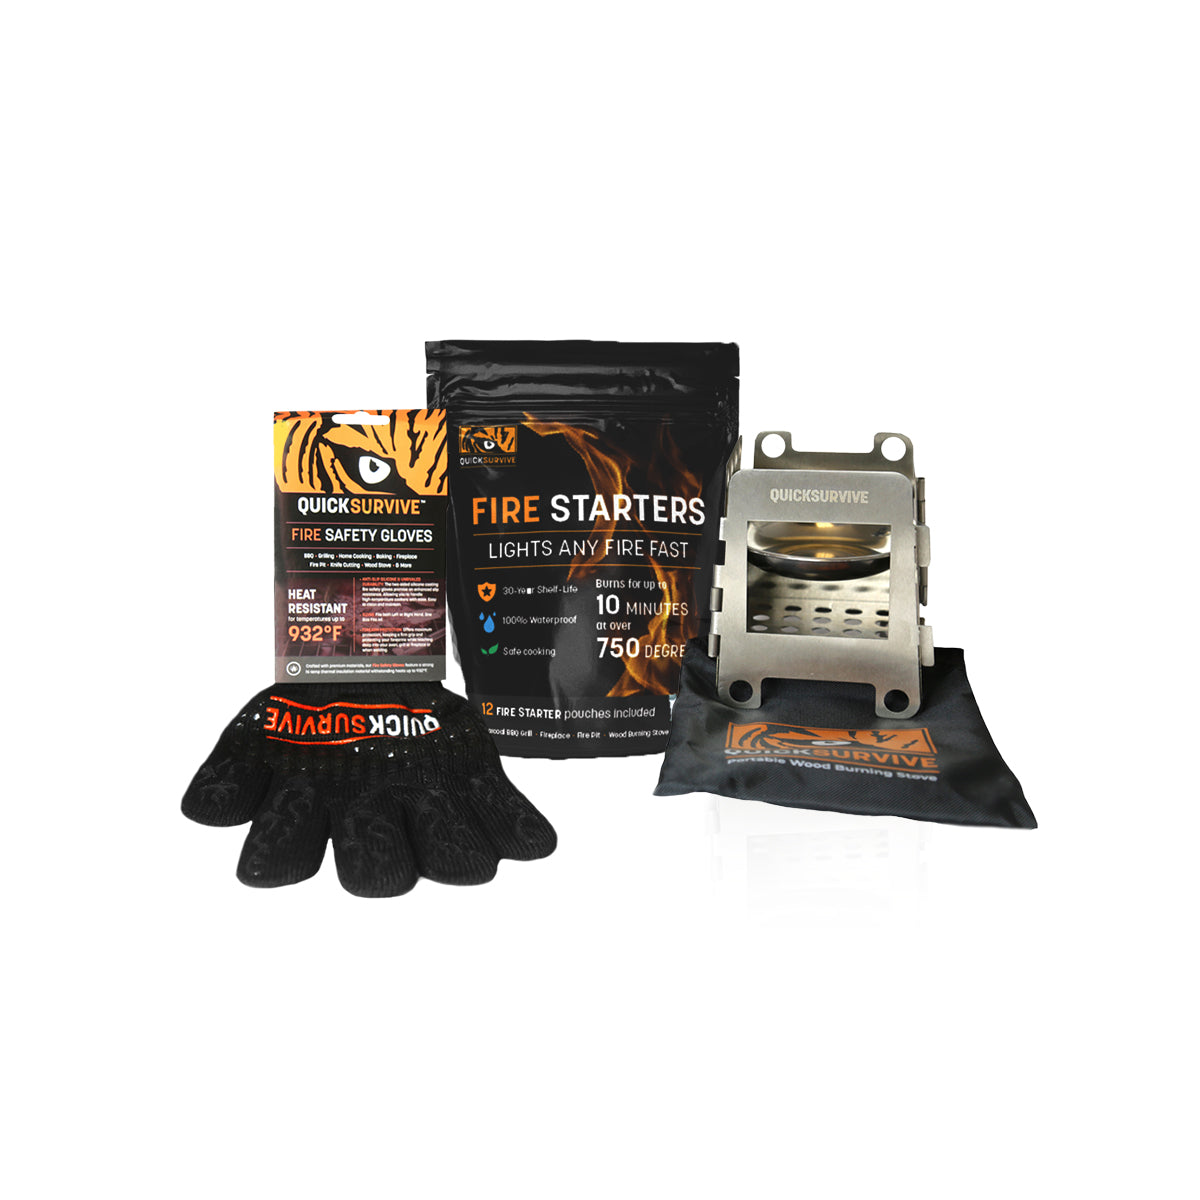 3 Piece Bundle - FIRE SAFETY GLOVE + 12 FIRE STARTERS + PORTABLE CAMPING STOVE - QUICKSURVIVE